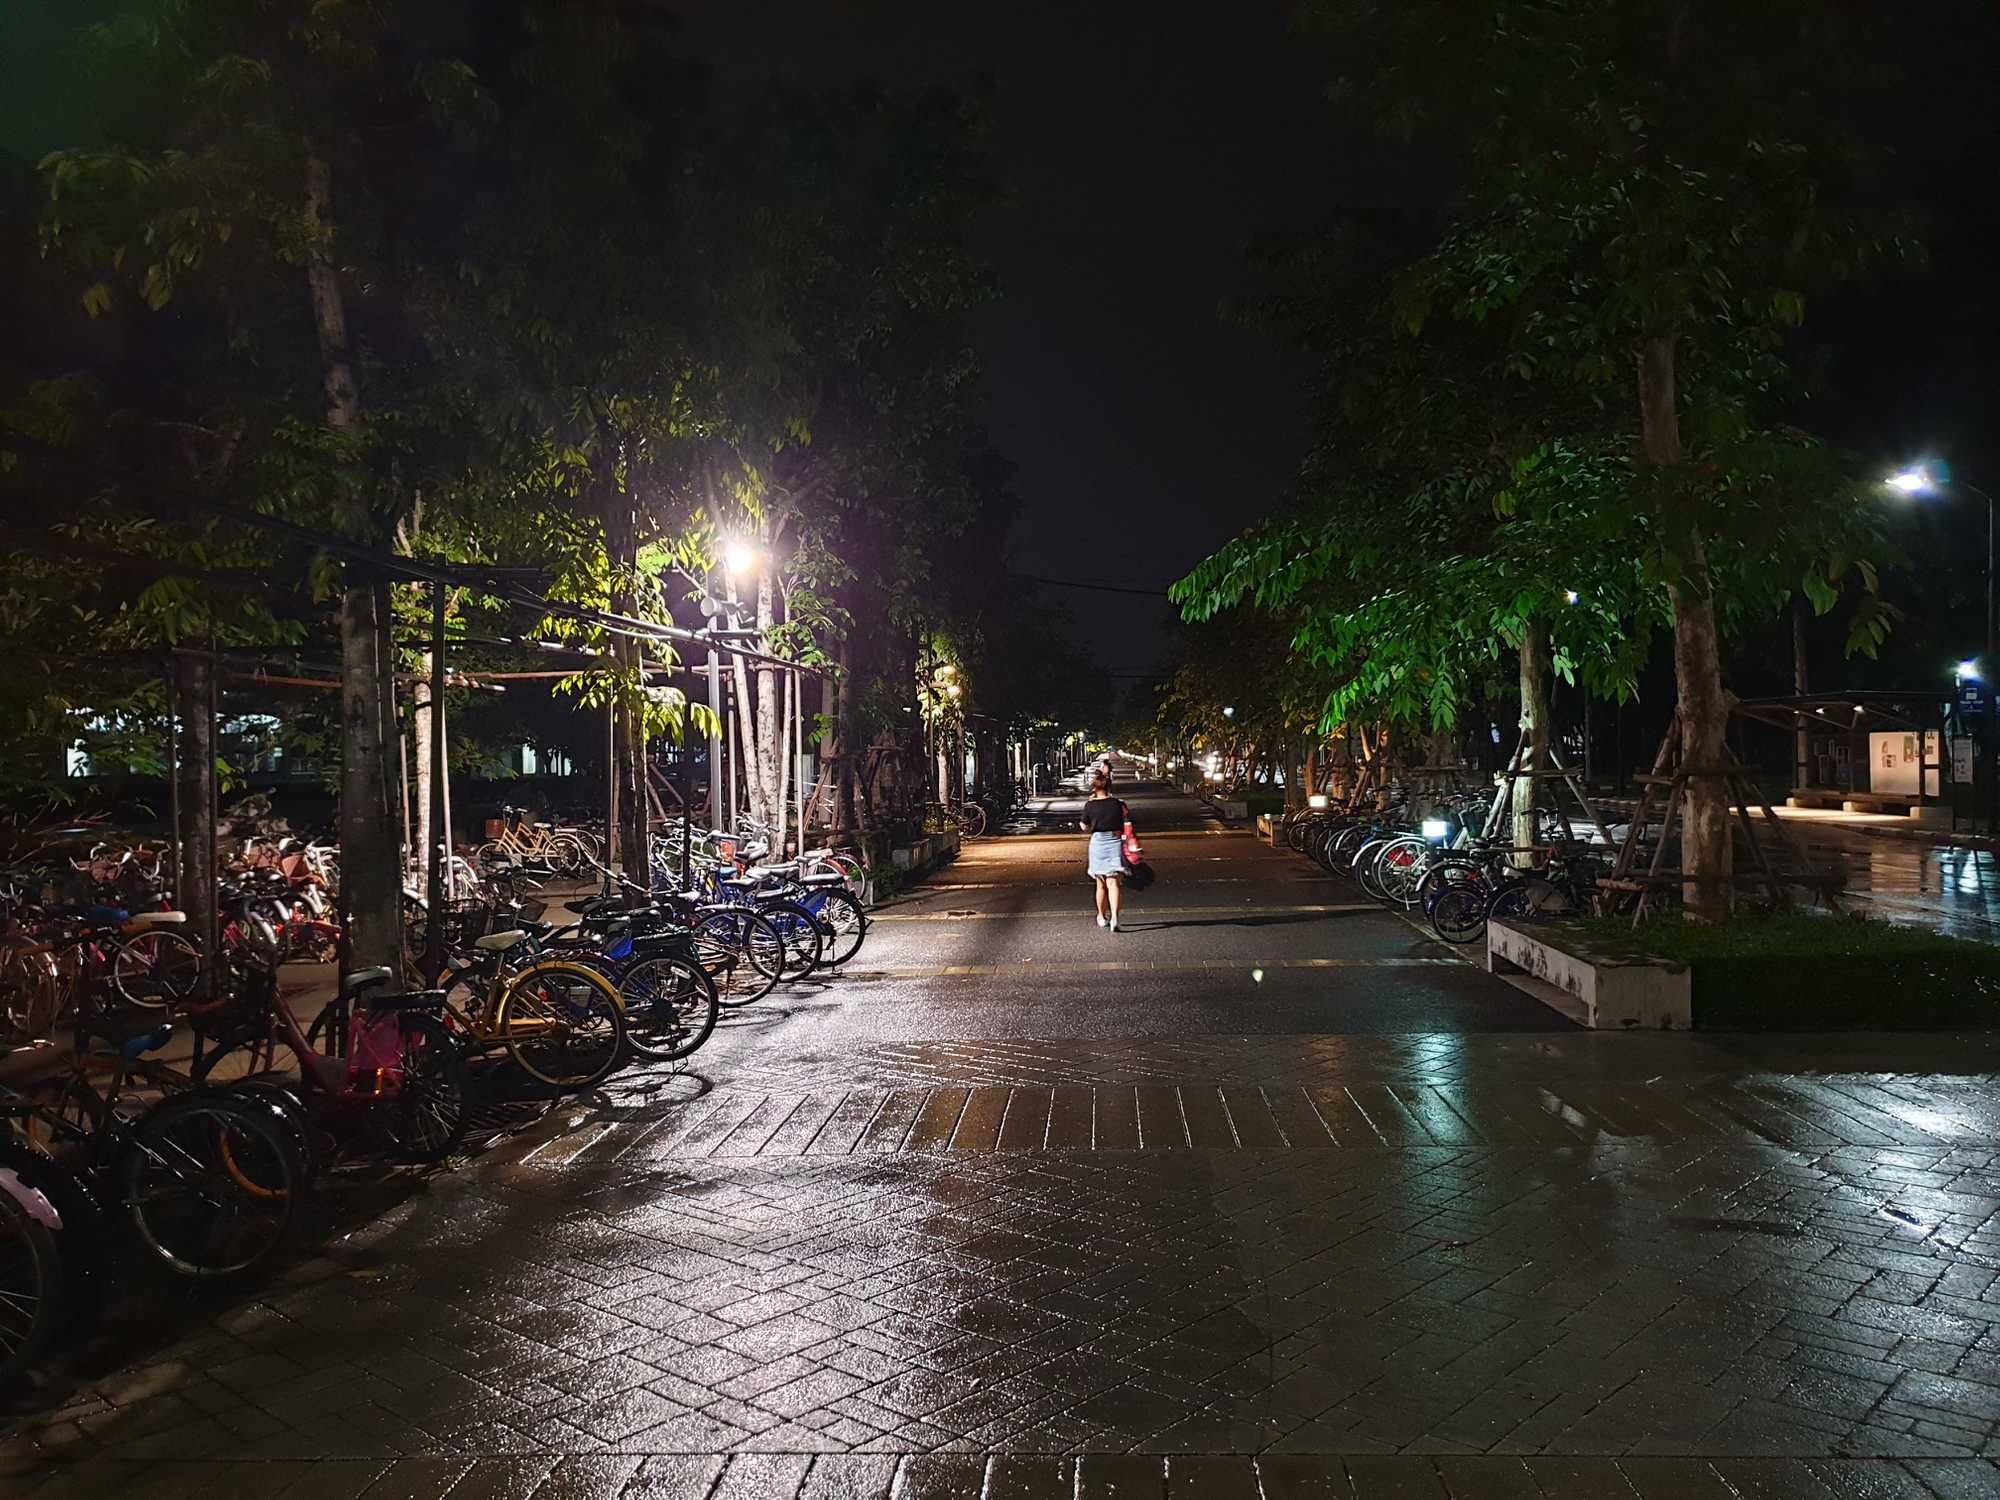 Samsung Galaxy Note 9 Sample Night Photo